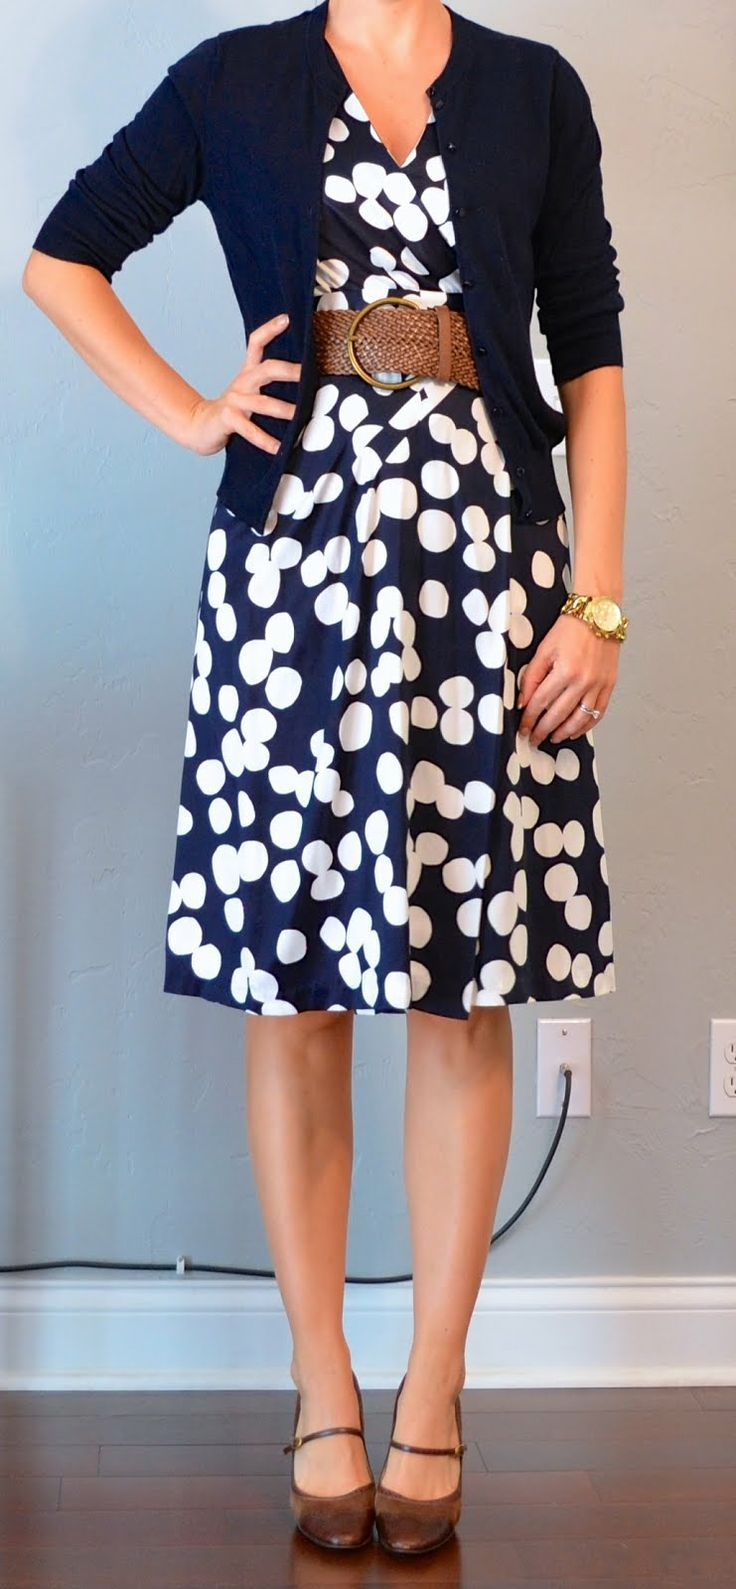 I WANT THIS WHOLE OUTFIT!! Outfit Posts: outfit post: navy  white polka-dot dress, navy cardigan, wide woven belt